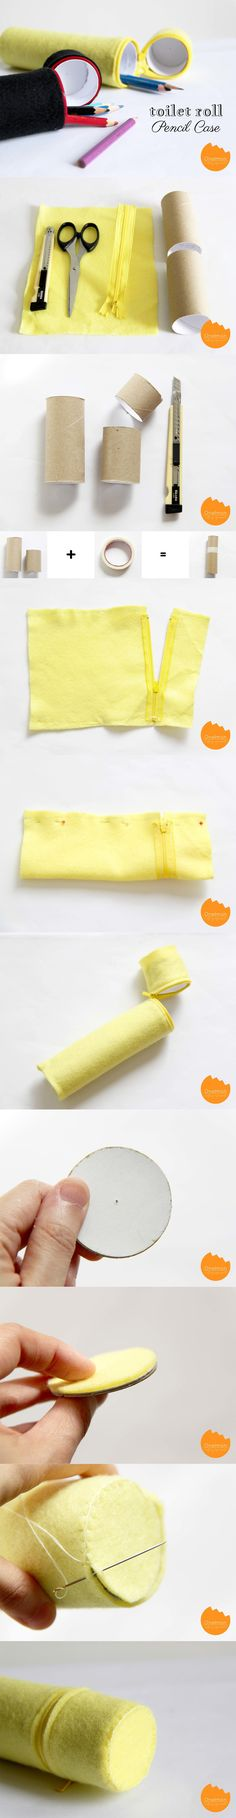 DIY toilet roll pencil case.